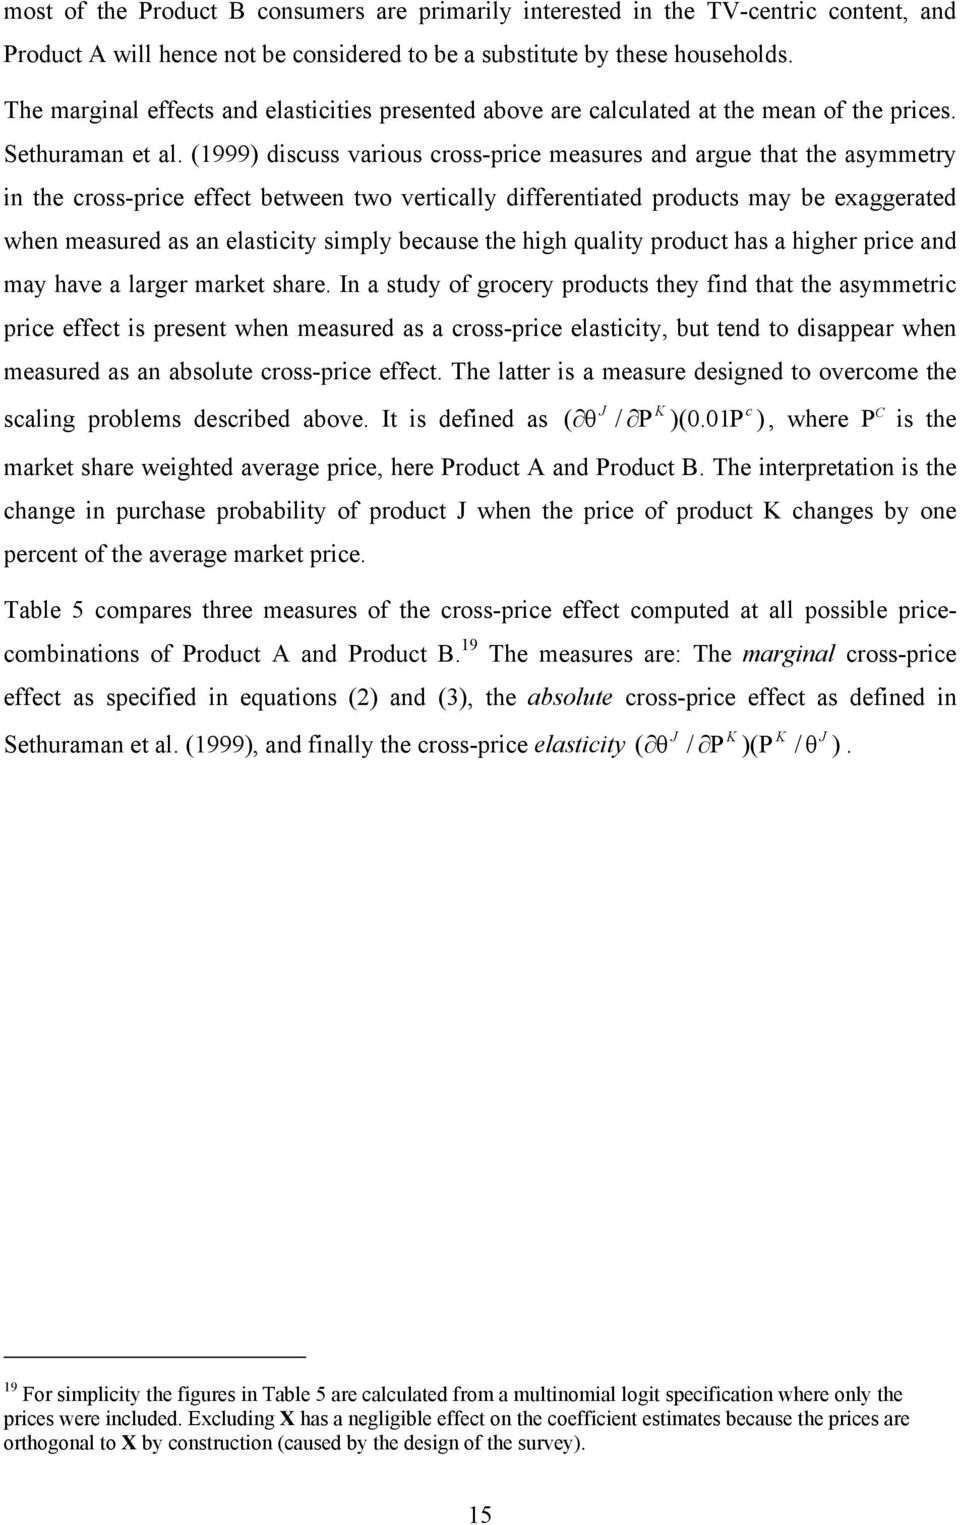 (1999) discuss various cross-price measures and argue that the asymmetry in the cross-price effect between two vertically differentiated products may be exaggerated when measured as an elasticity